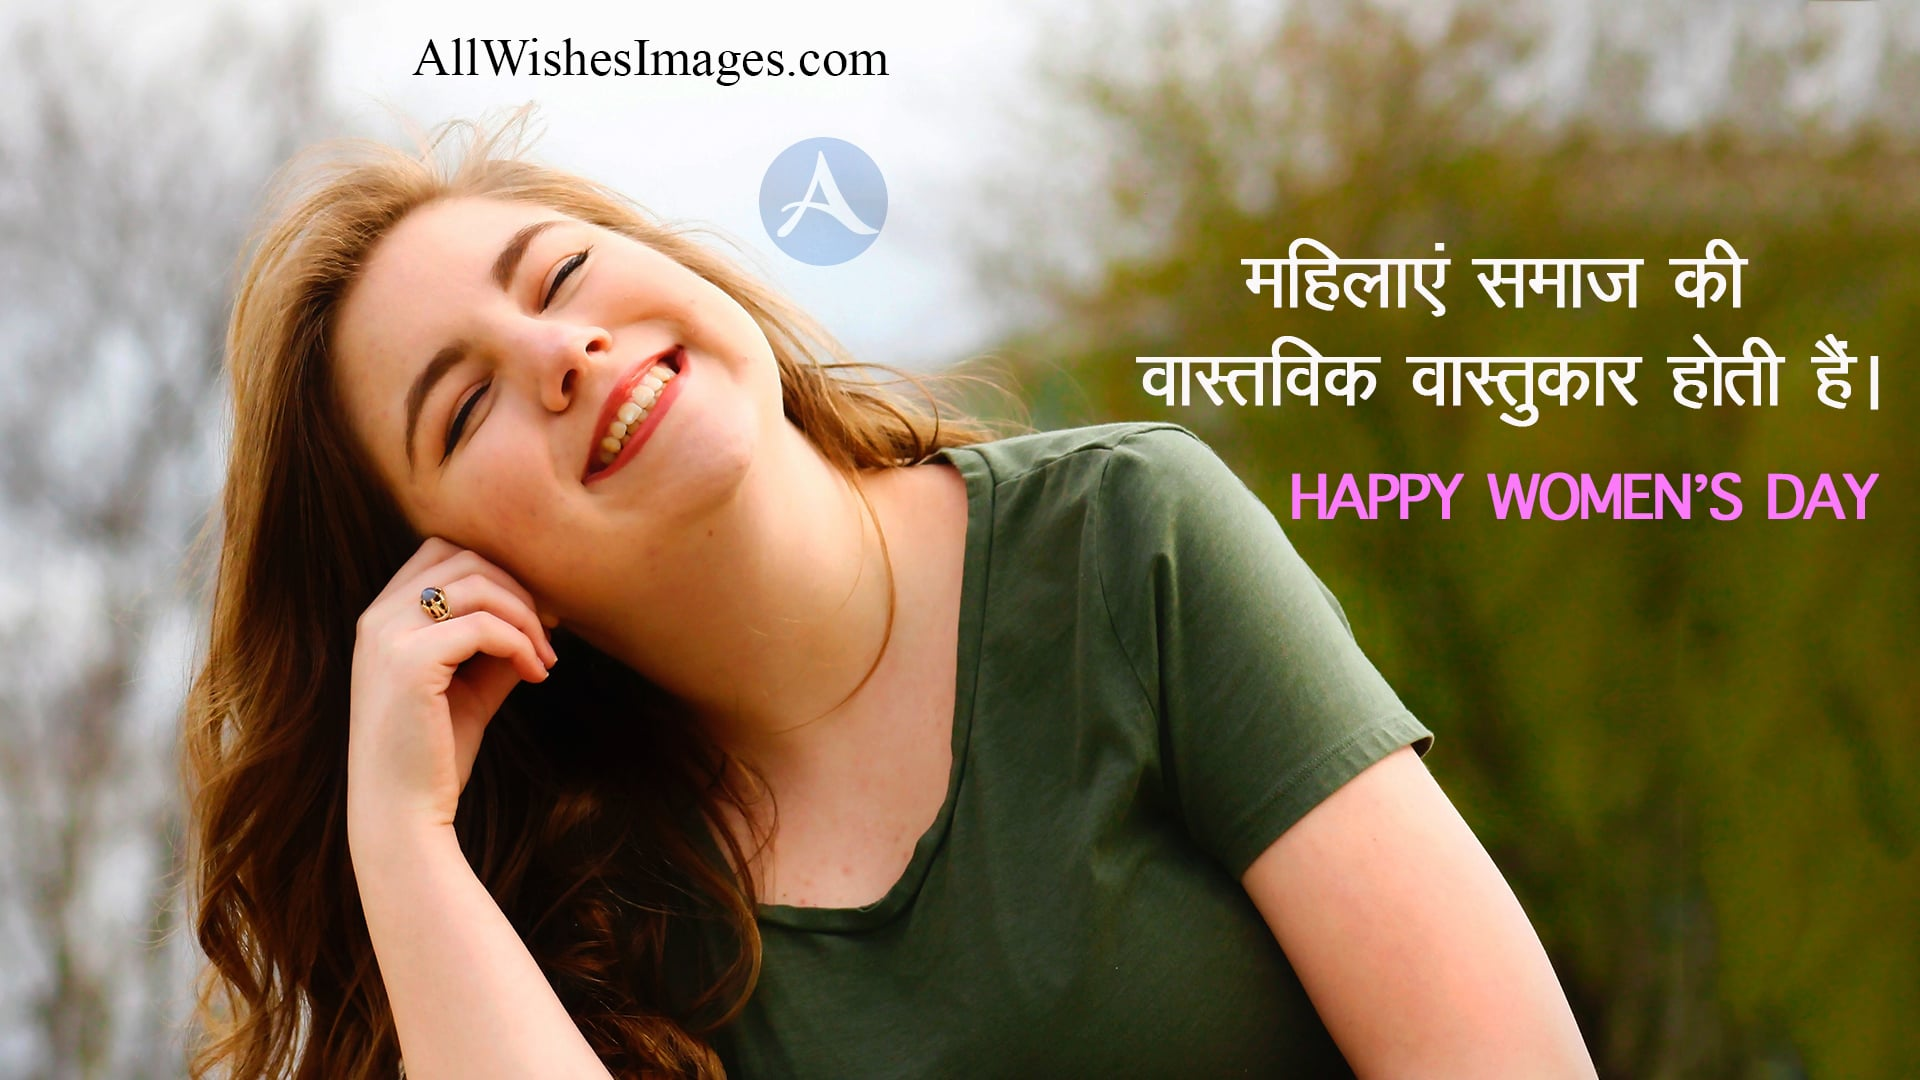 Women's Day quote in HIndi   All Wishes Images   Images for WhatsApp